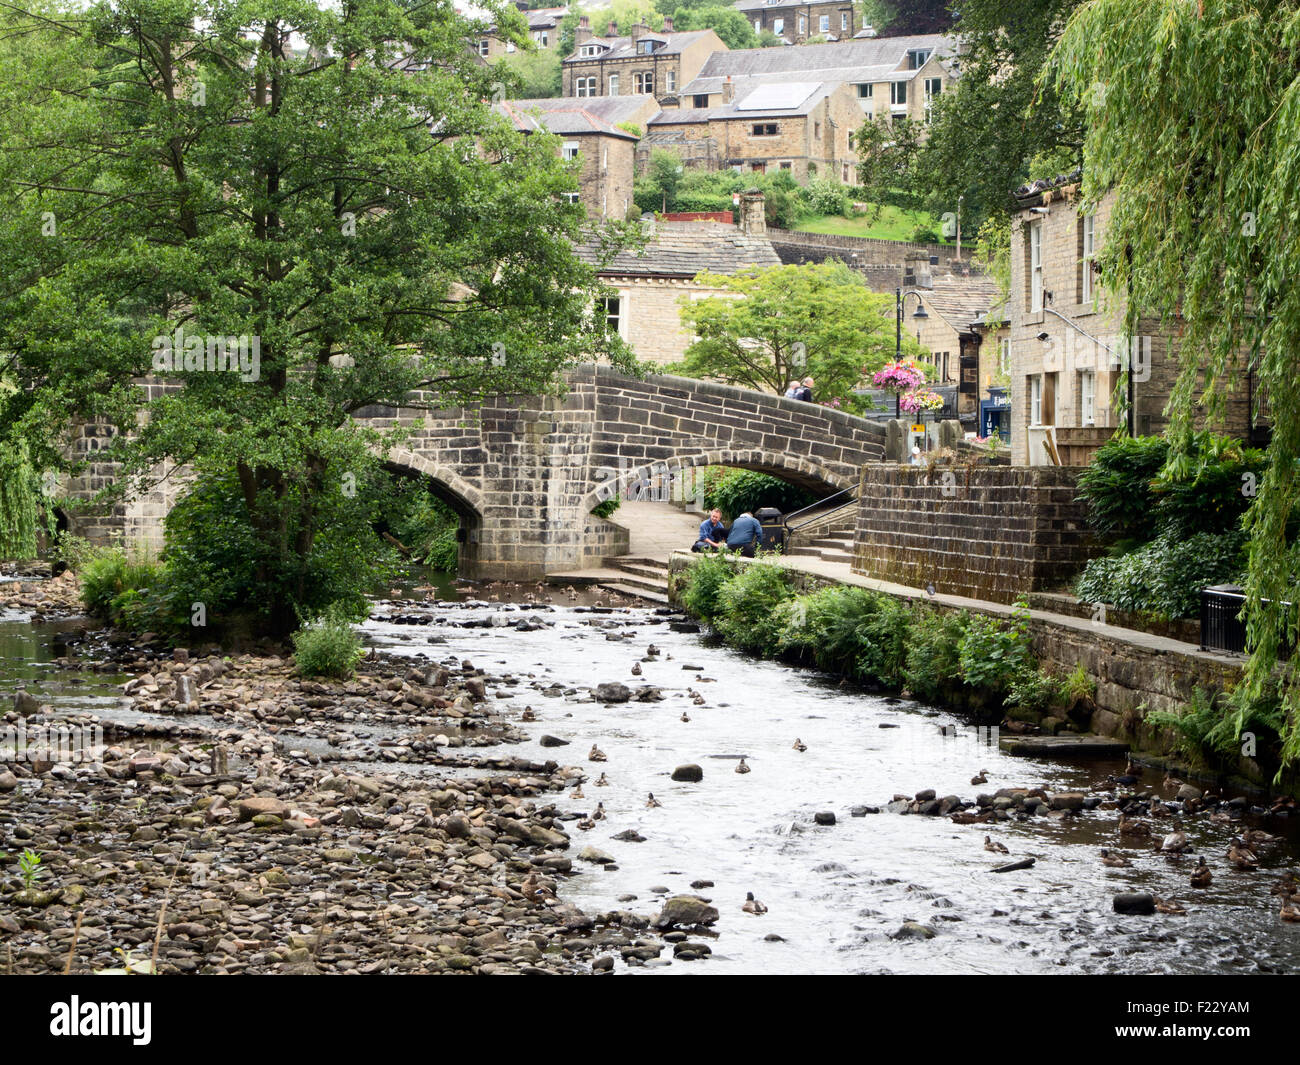 The Old Packhorse Bridge at Hebden Bridge West Yorkshire England - Stock Image